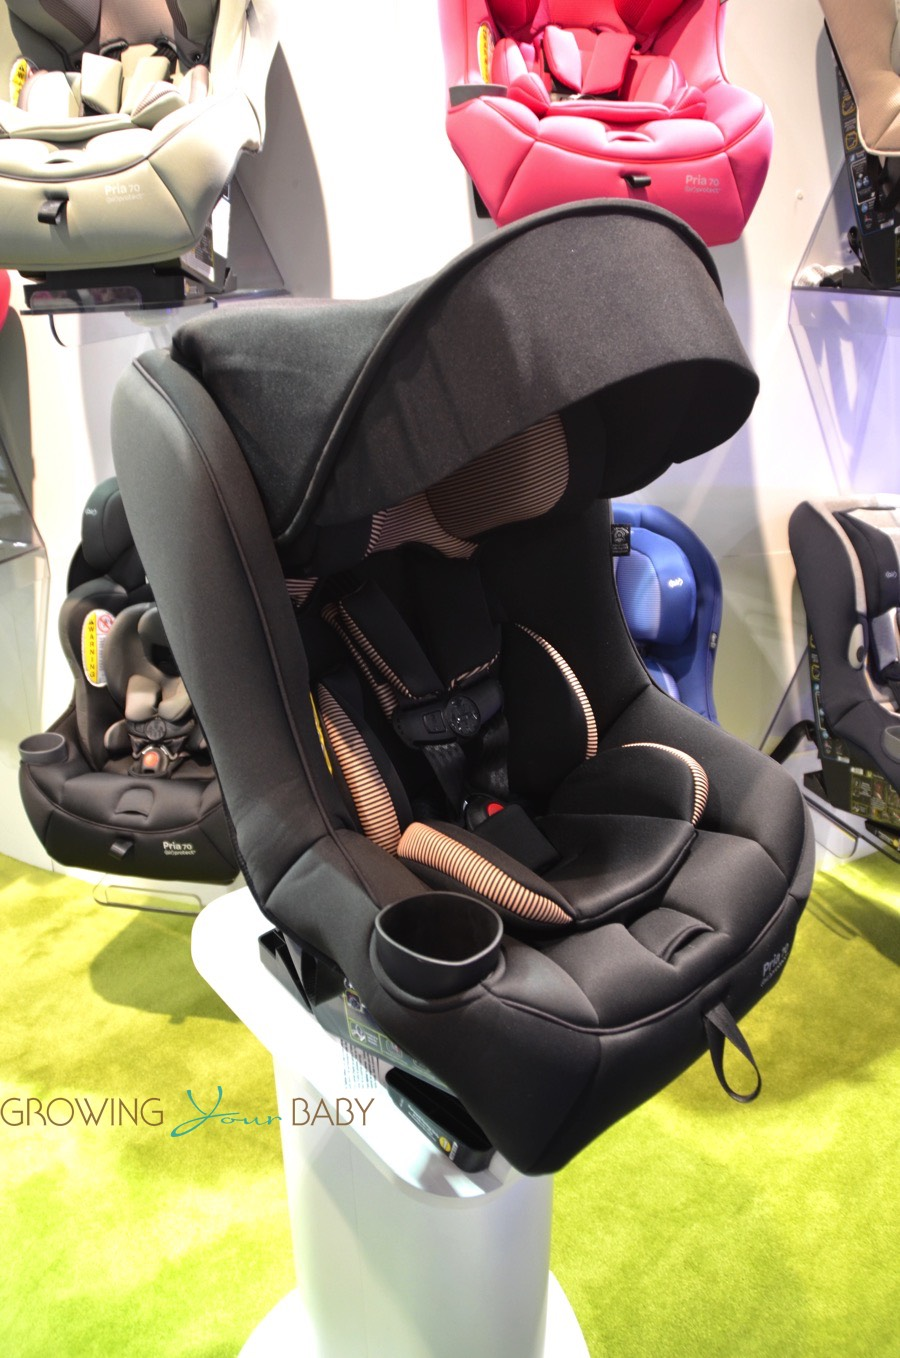 Maxi-Cosi Pria 85 sun shade & Maxi-Cosi Pria 85 sun shade - Growing Your Baby